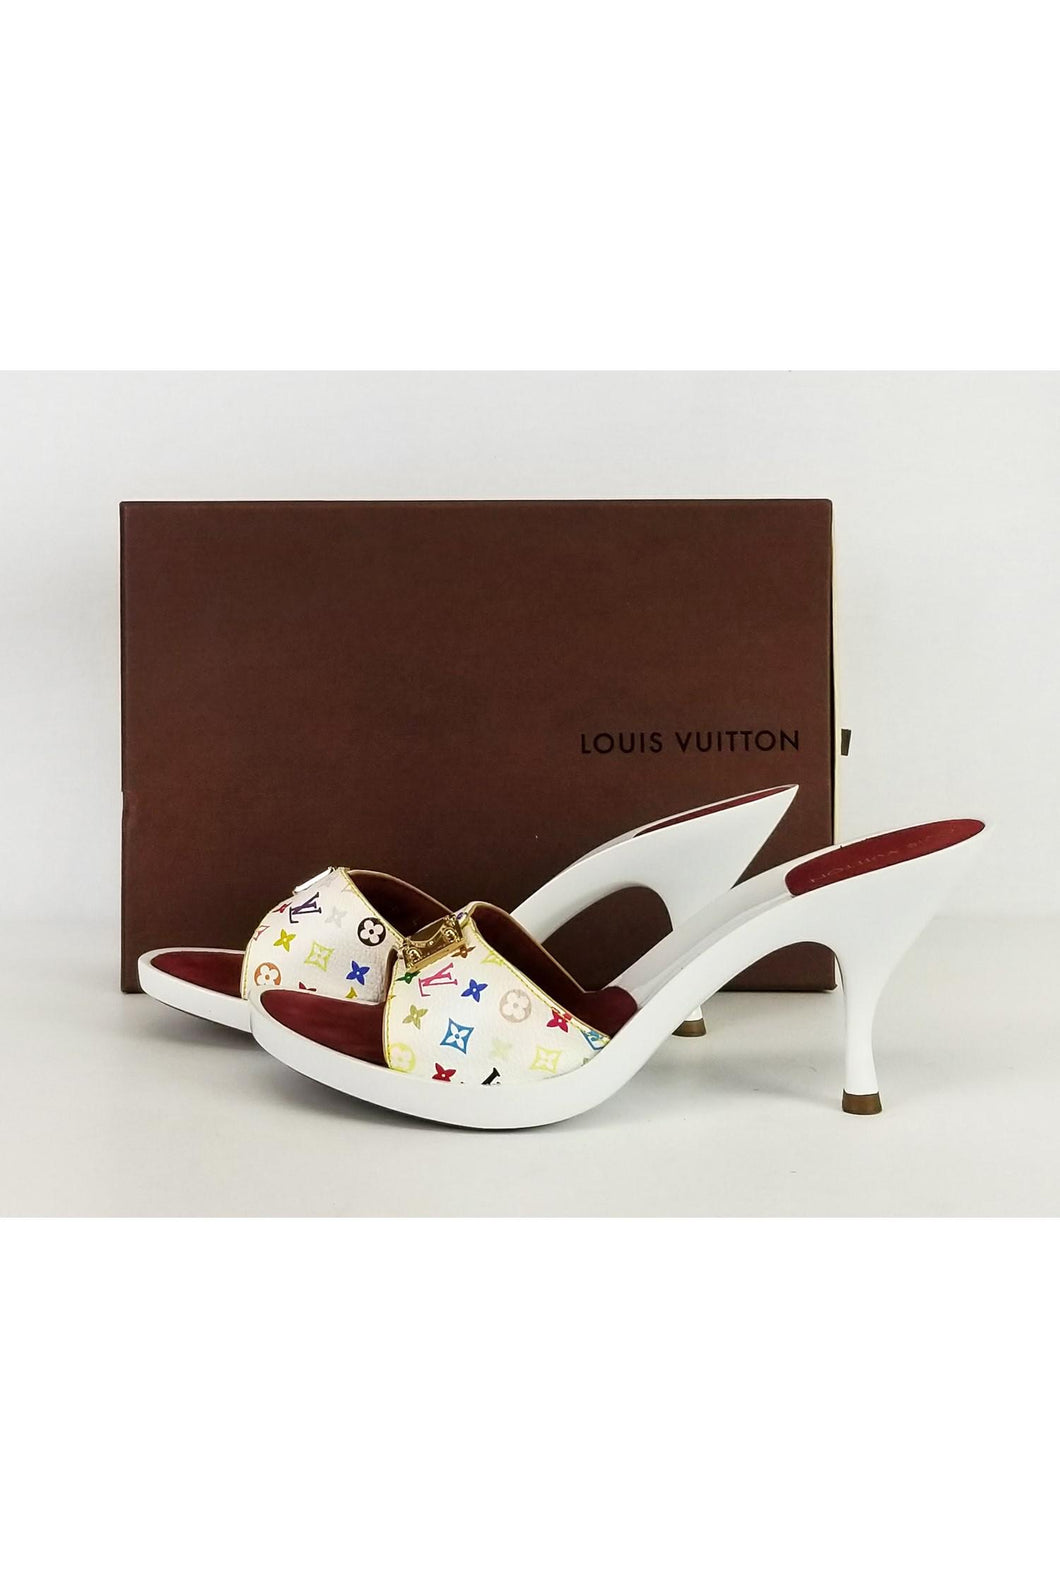 Louis Vuitton Murakami Mules